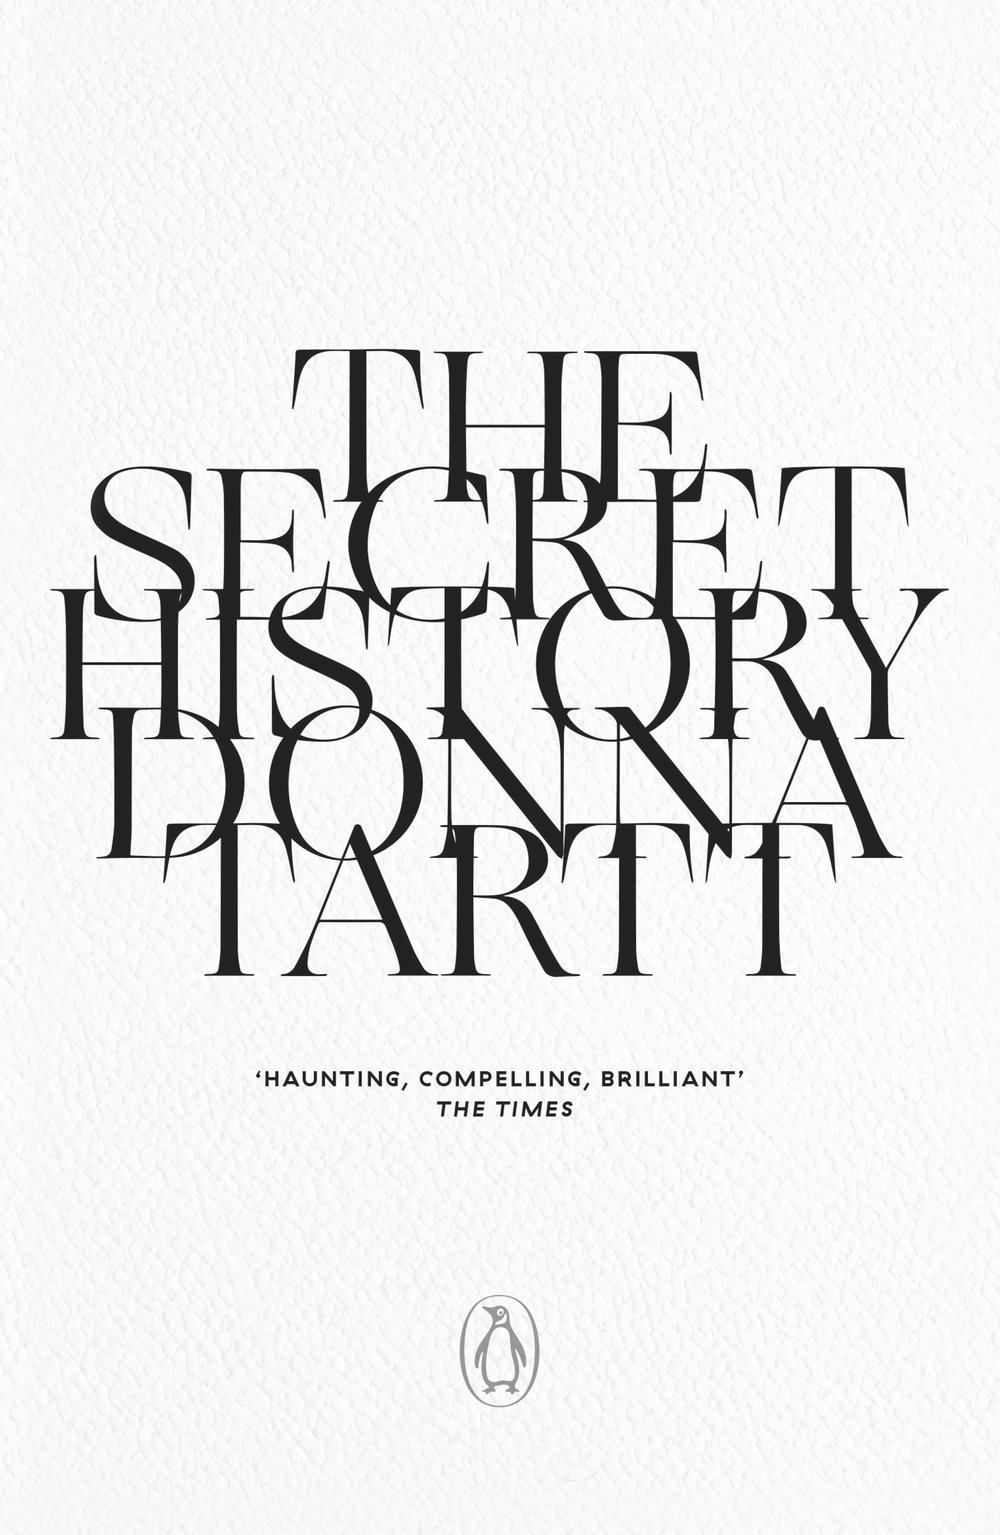 the secret history by donna tart - Truly deserving of the accolade Modern Classic, Donna Tartt's cult bestseller The Secret Historyis a remarkable achievement - incredibly compelling, dramatic and playful.Under the influence of their charismatic classics professor, a group of clever, eccentric misfits at an elite New England college discover a way of thinking and living that is a world away from the humdrum existence of their contemporaries. But when they go beyond the boundaries of normal morality their lives are changed profoundly and for ever, and they discover how hard it can be to truly live and how easy it is to kill.